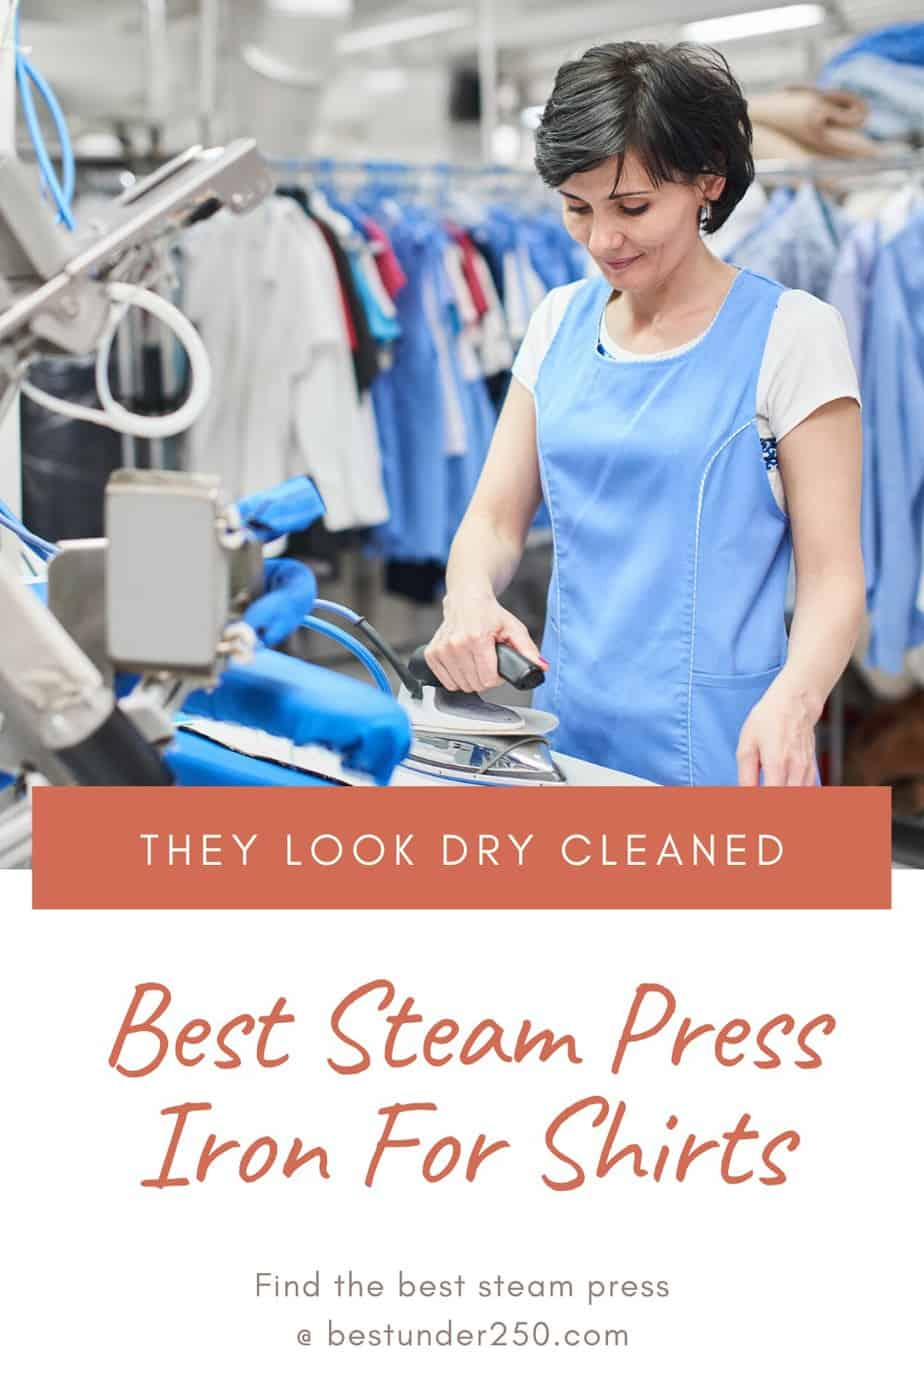 The best steam press iron for shirts